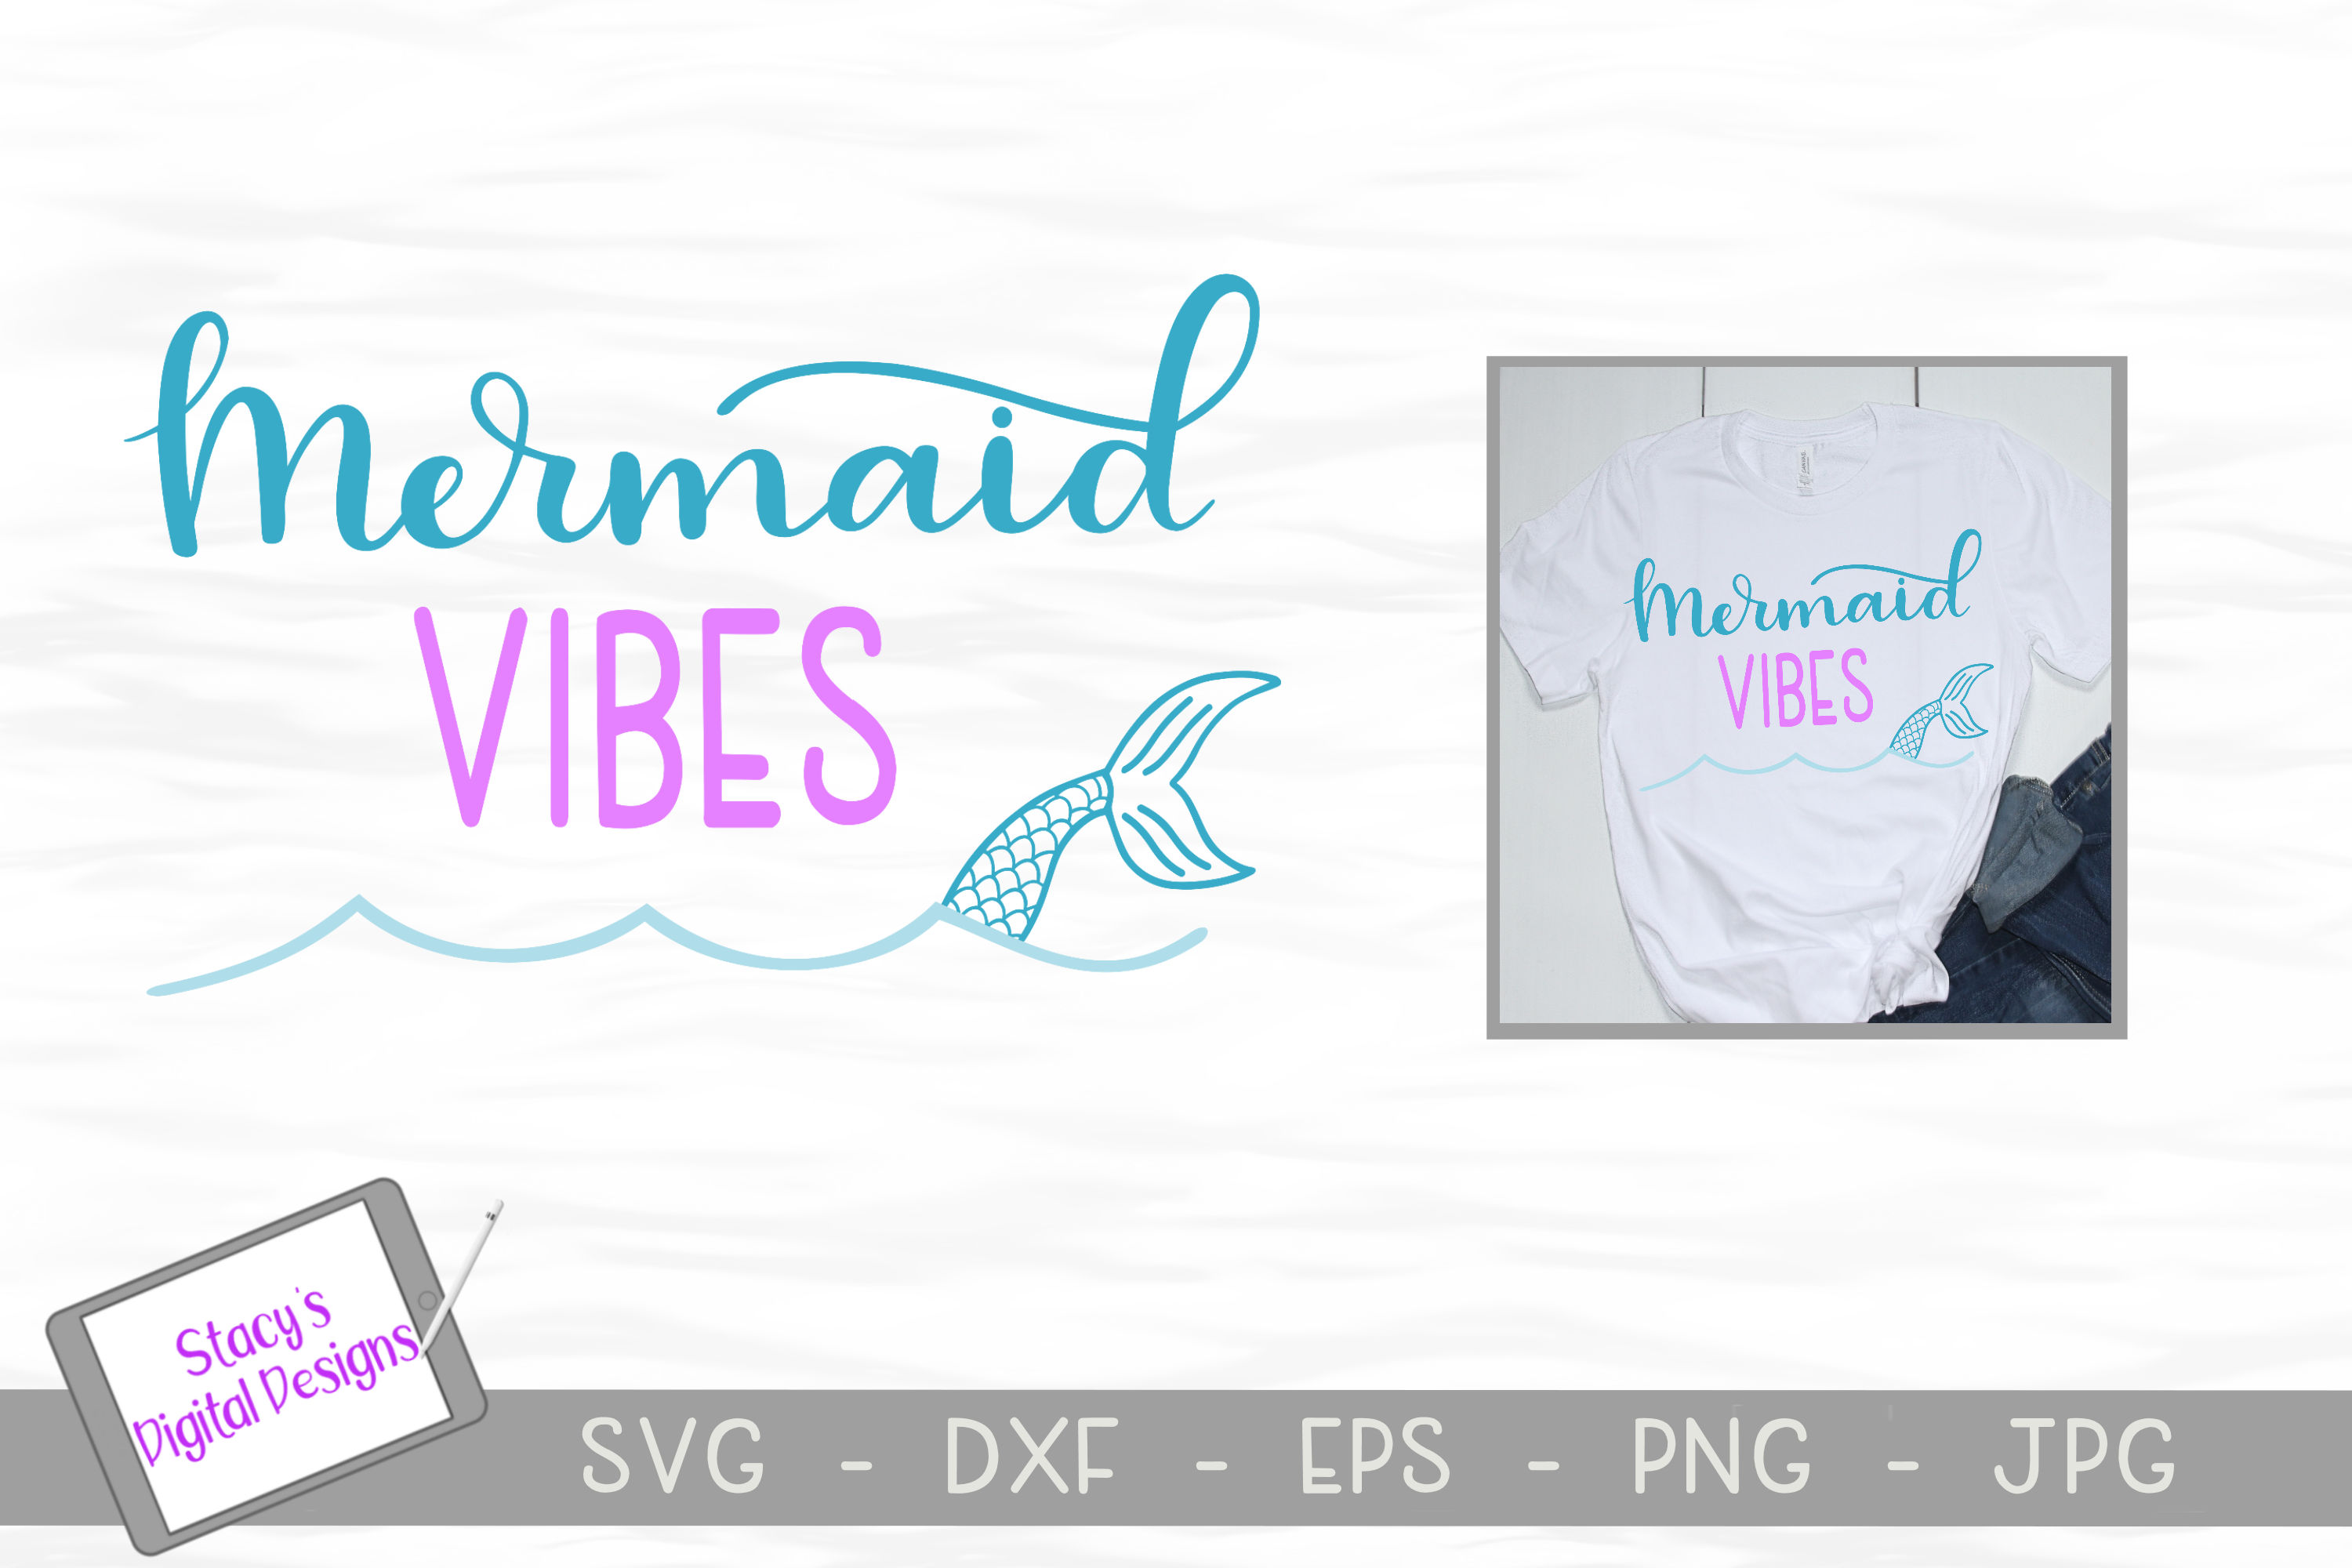 Mermaid SVG Bundle - 4 Mermaid SVG designs example image 3